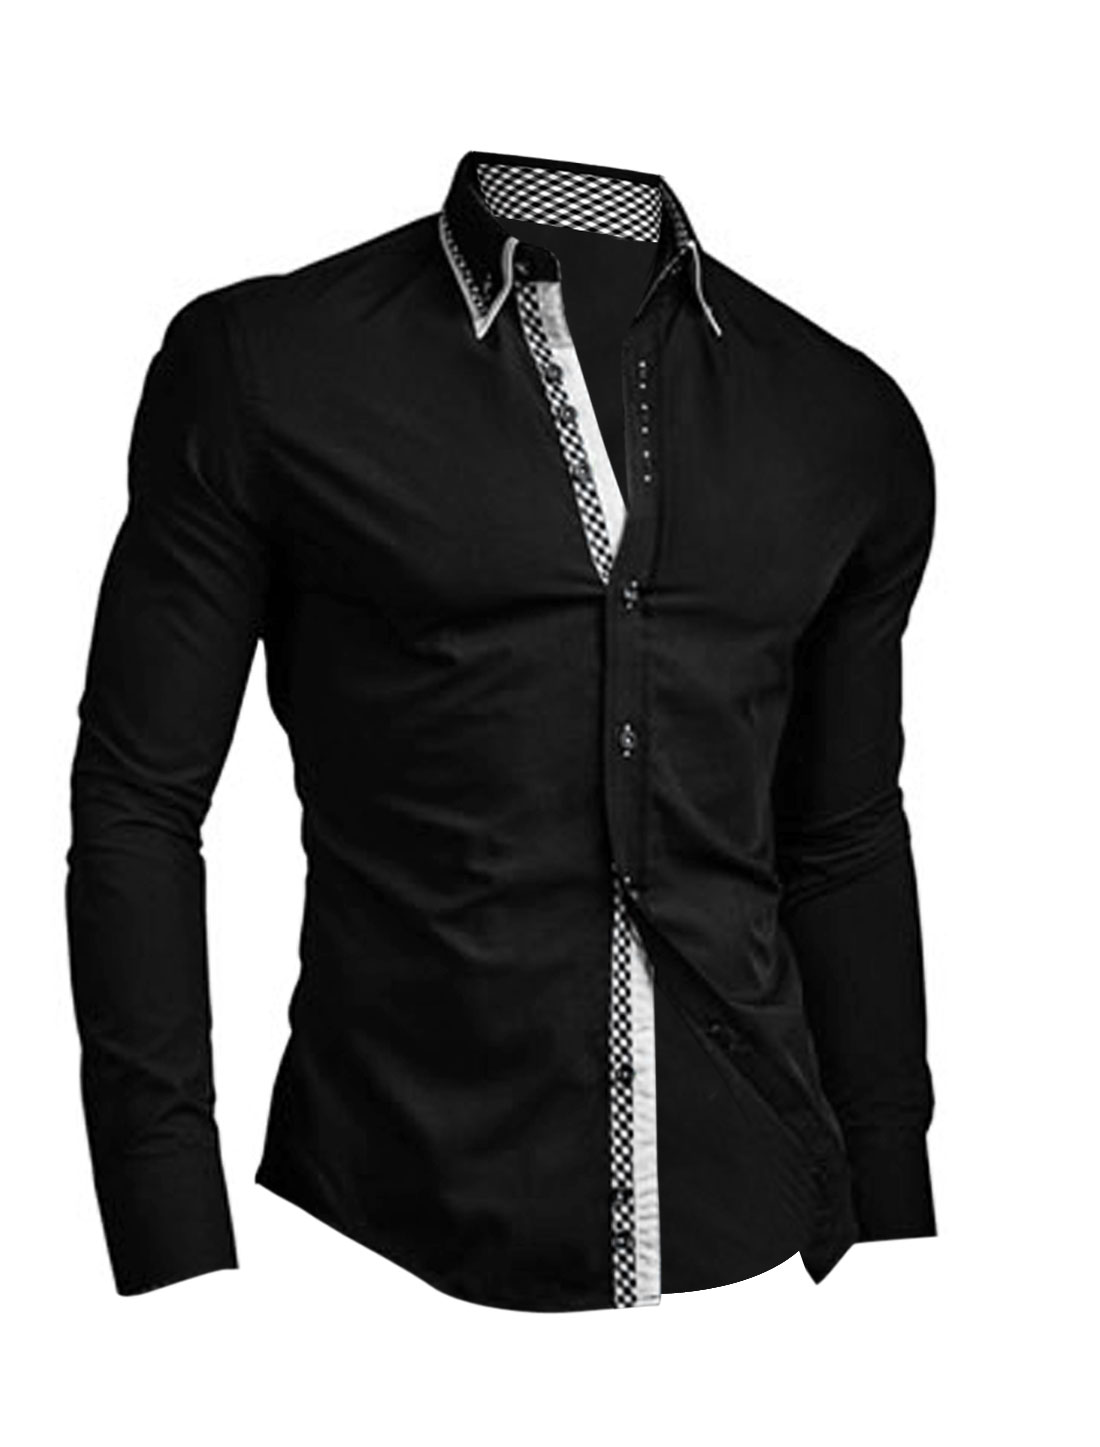 Men Tiered Point Collar Button Up Long Sleeve Casual Shirt Black M